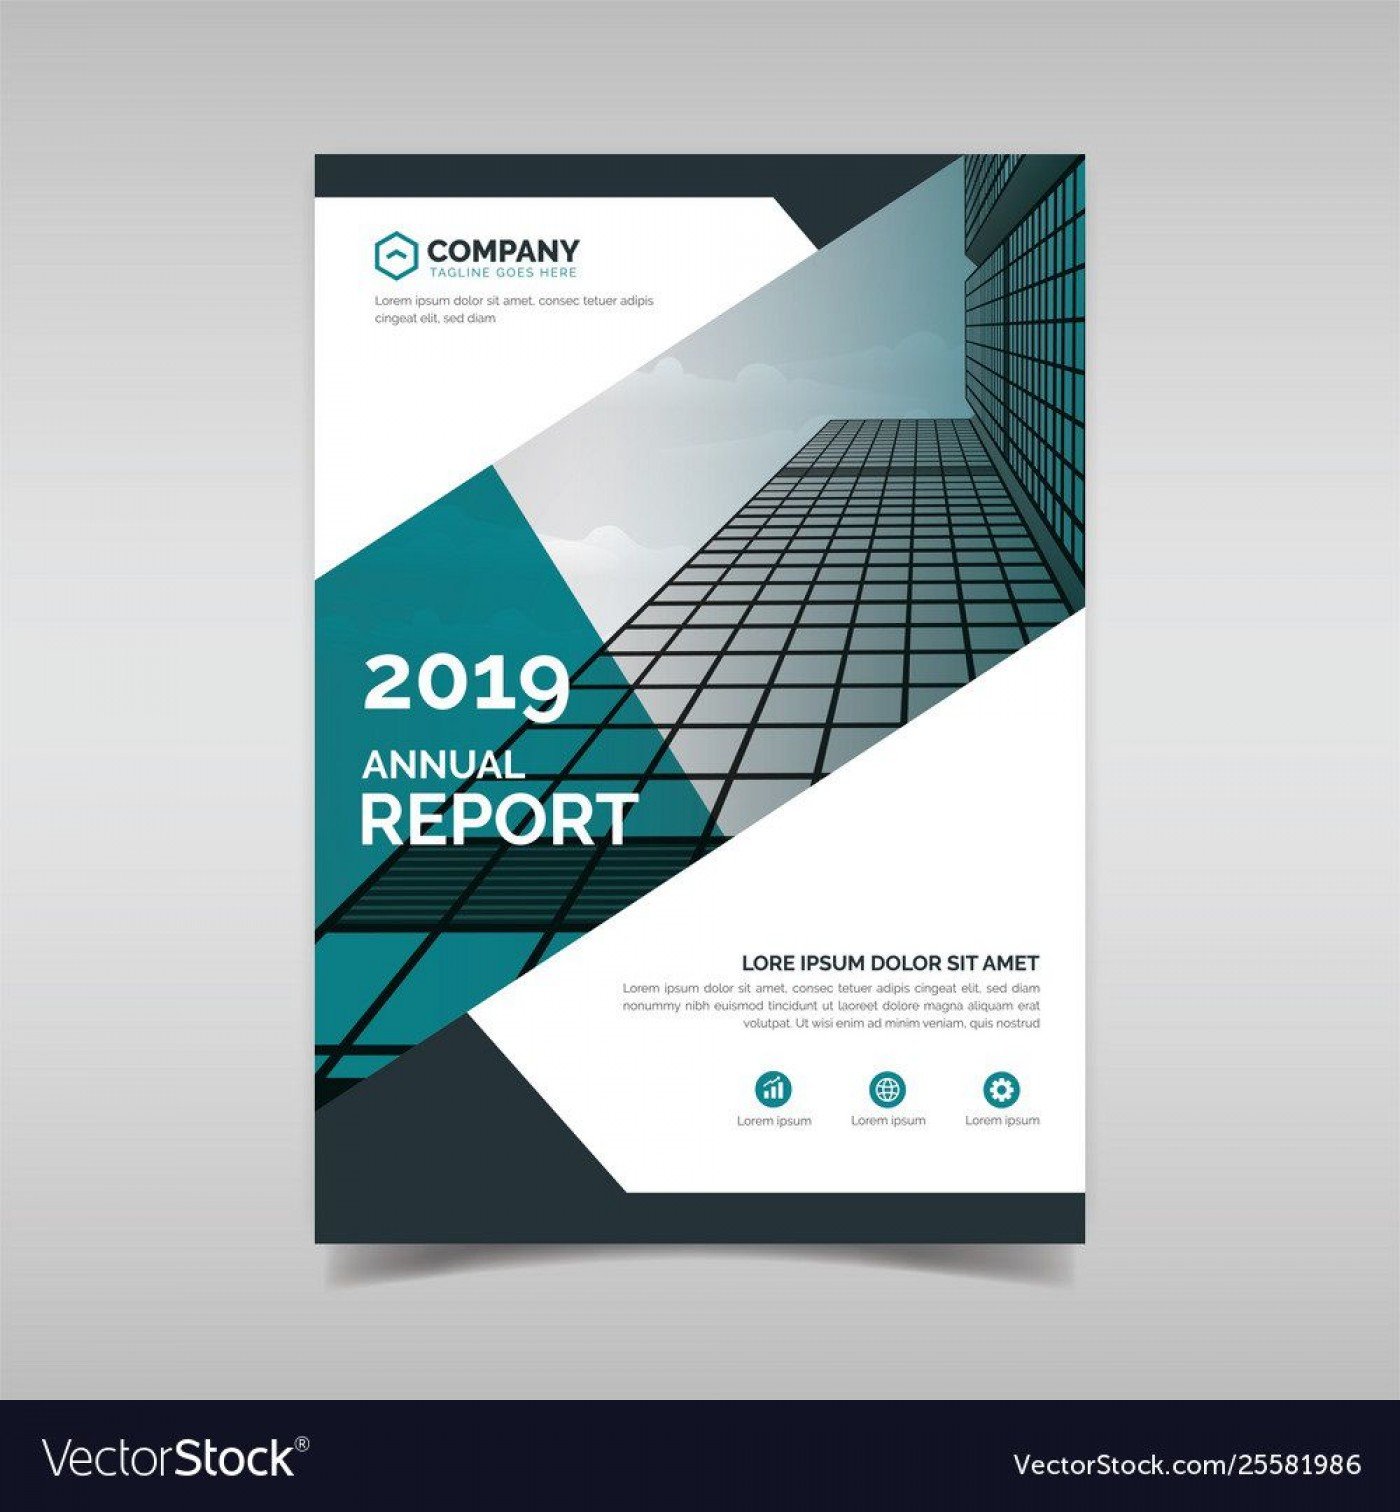 004 Imposing Free Download Annual Report Cover Design Template High Resolution  Page In Word1400